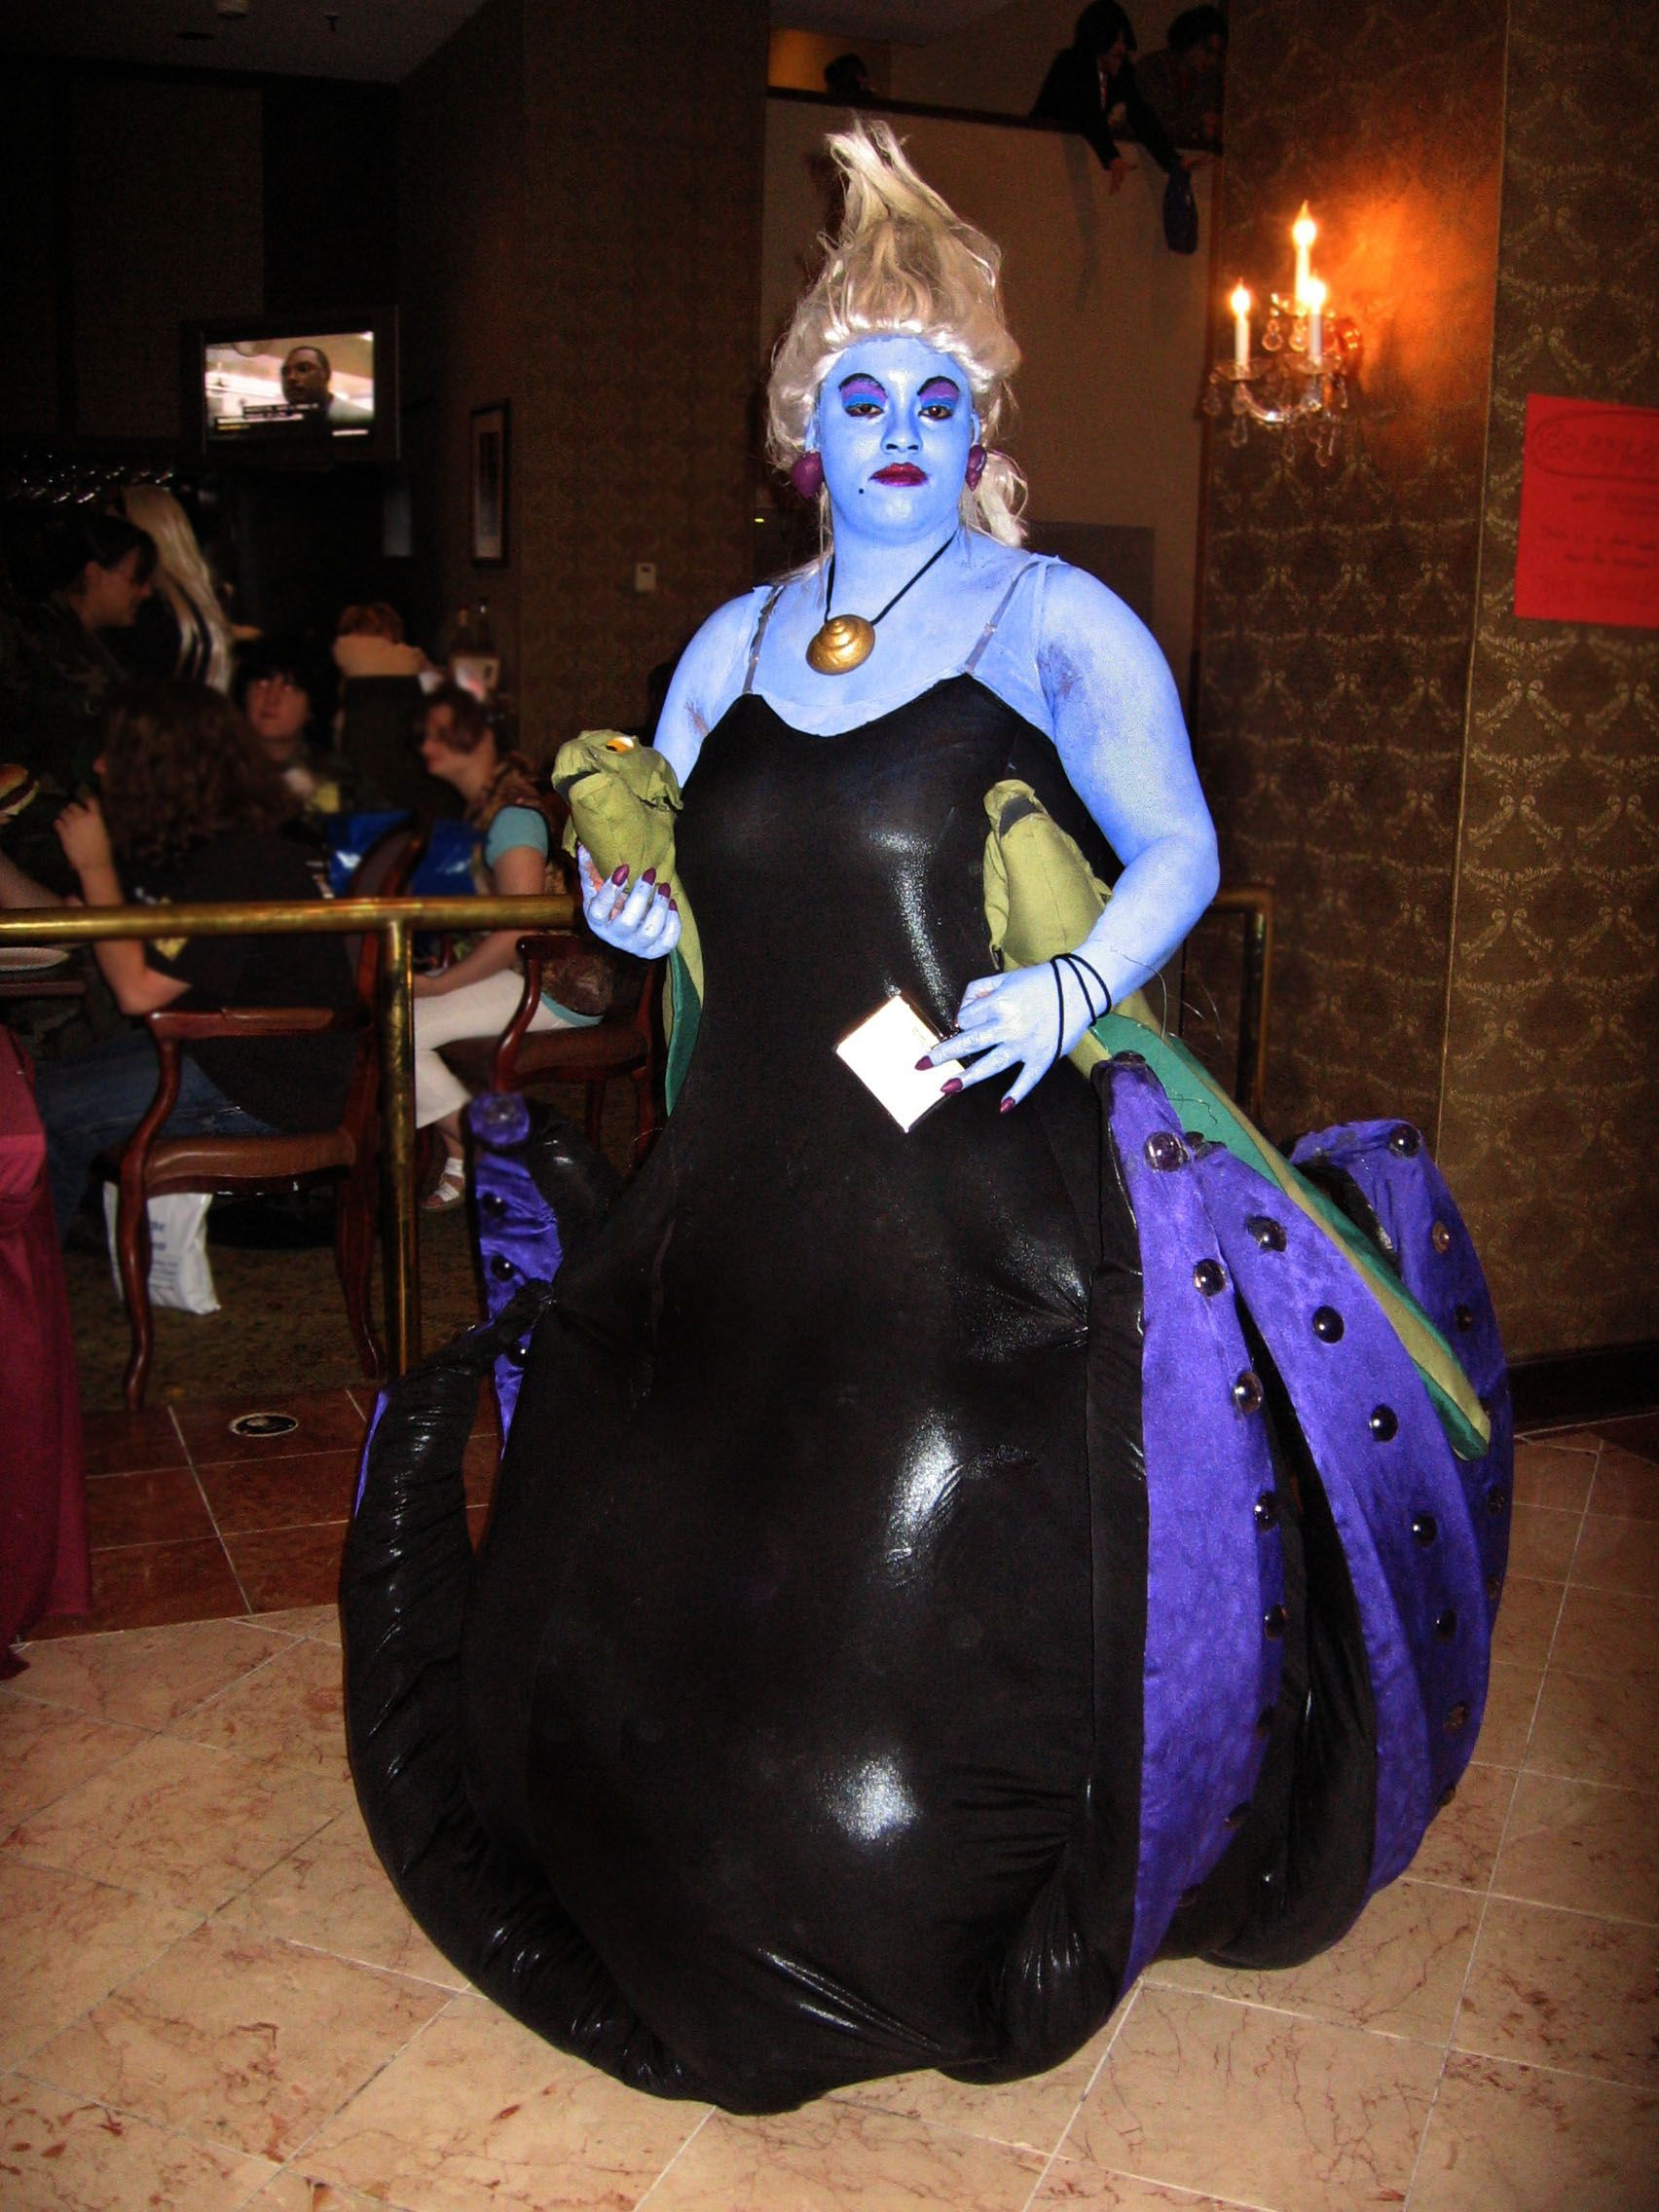 17 Best images about Ursula Tara on Pinterest | Halloween queen ...